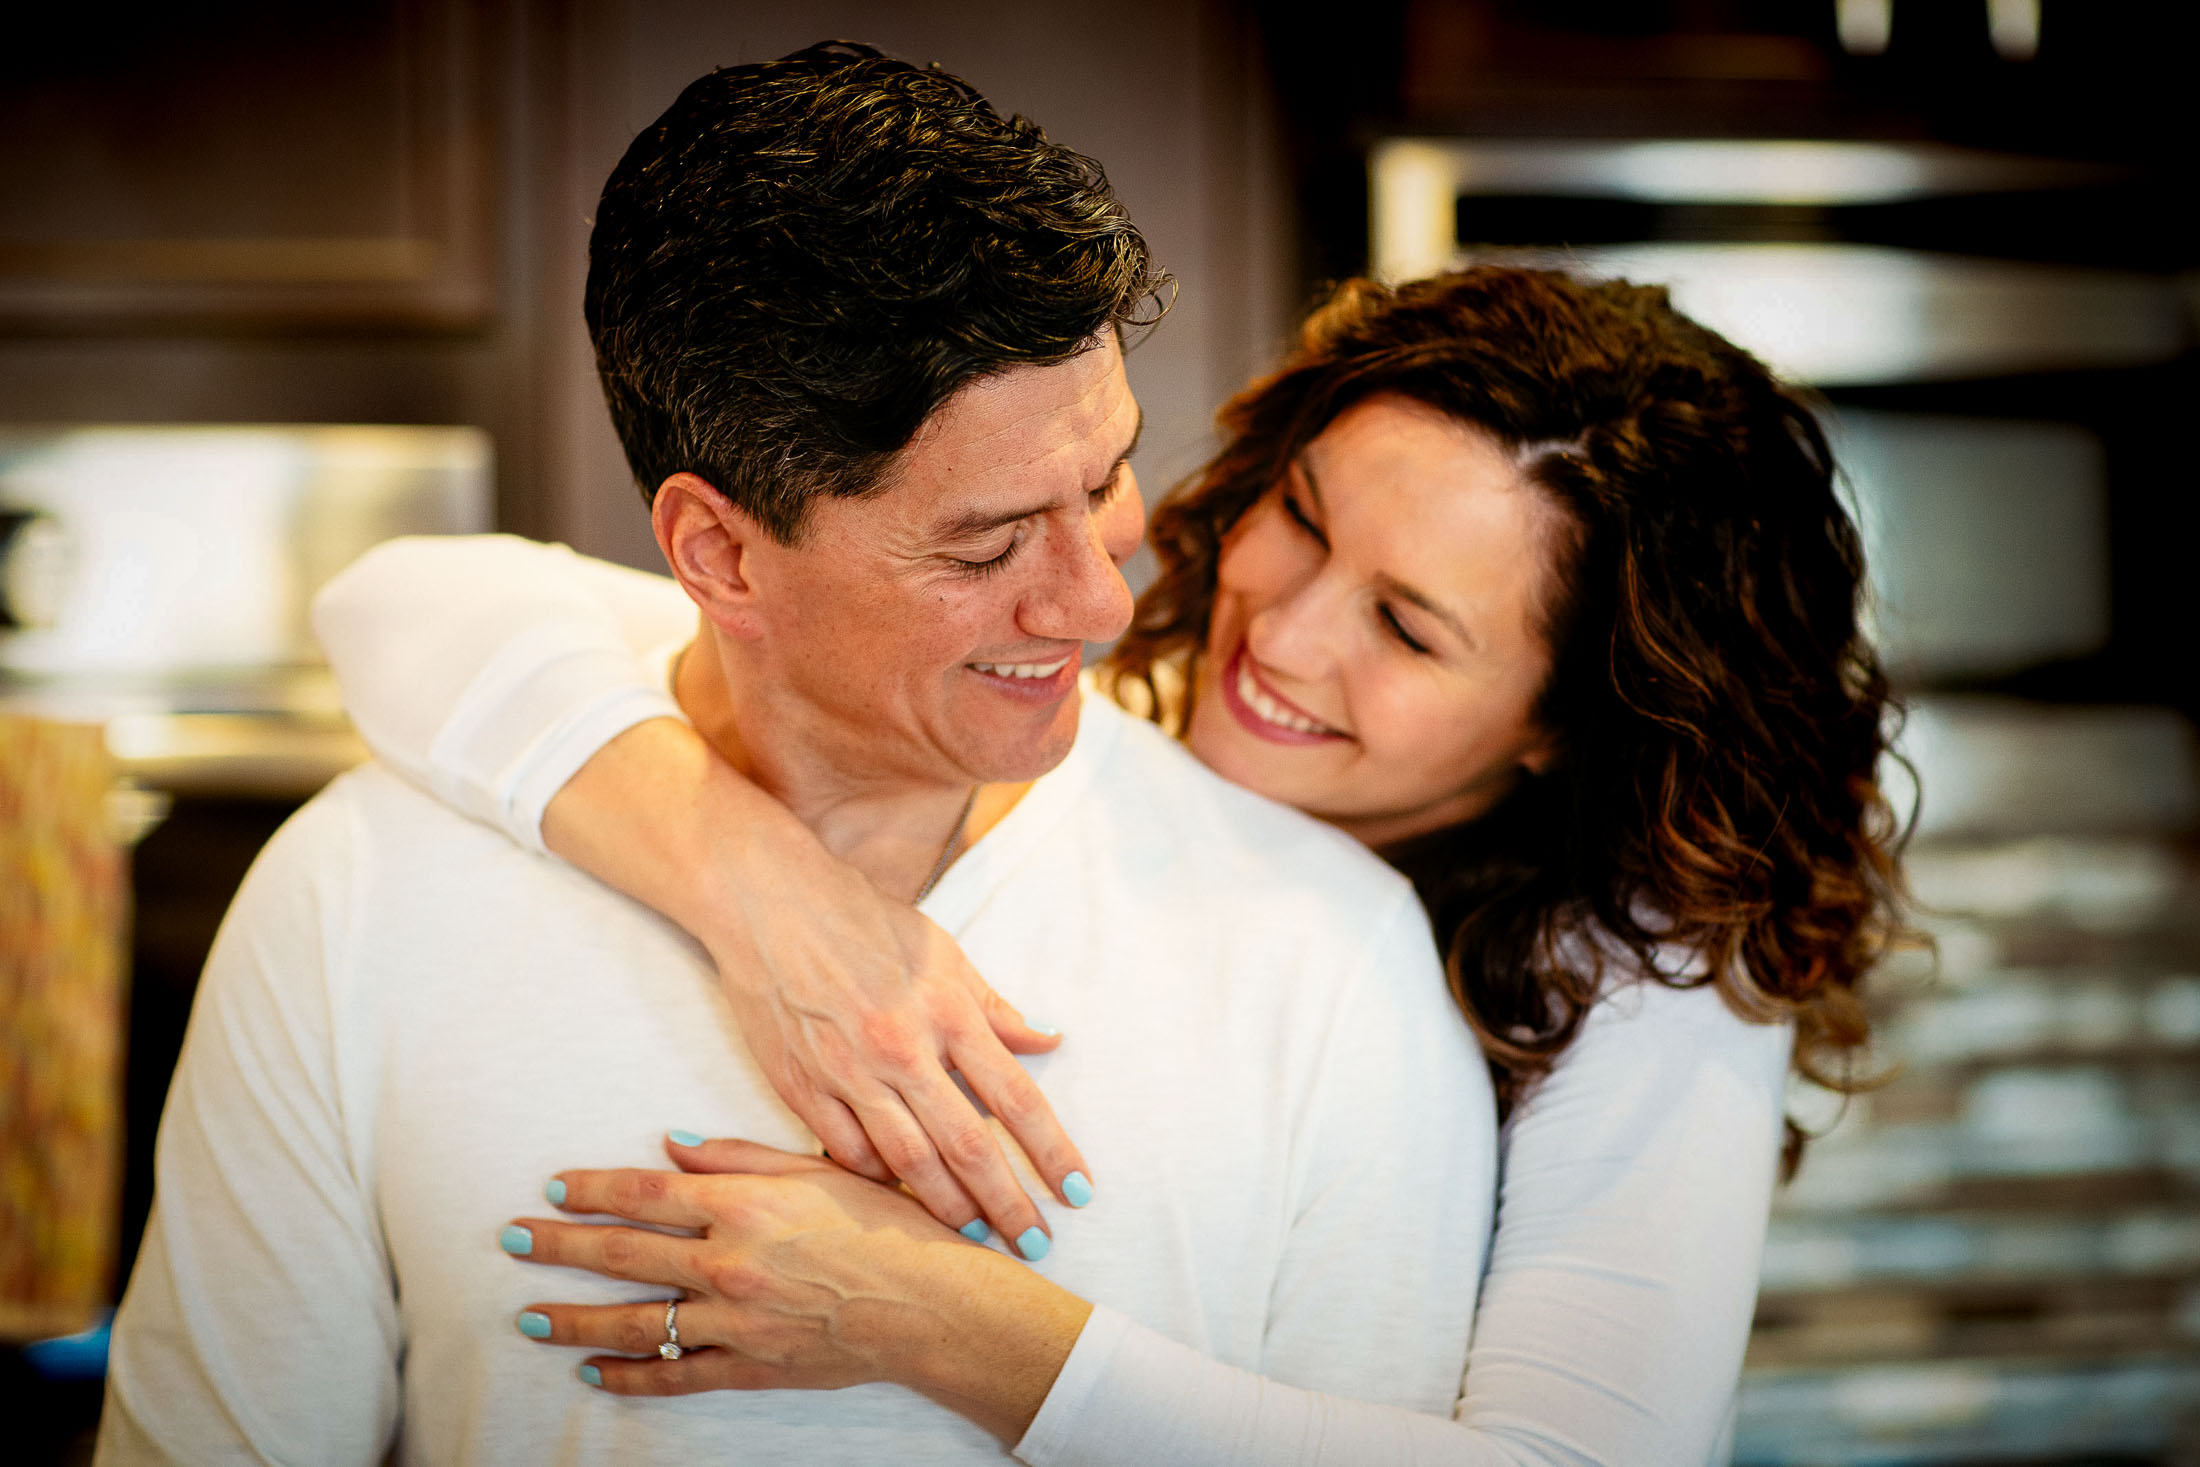 Couple embraces while cooking in their home.